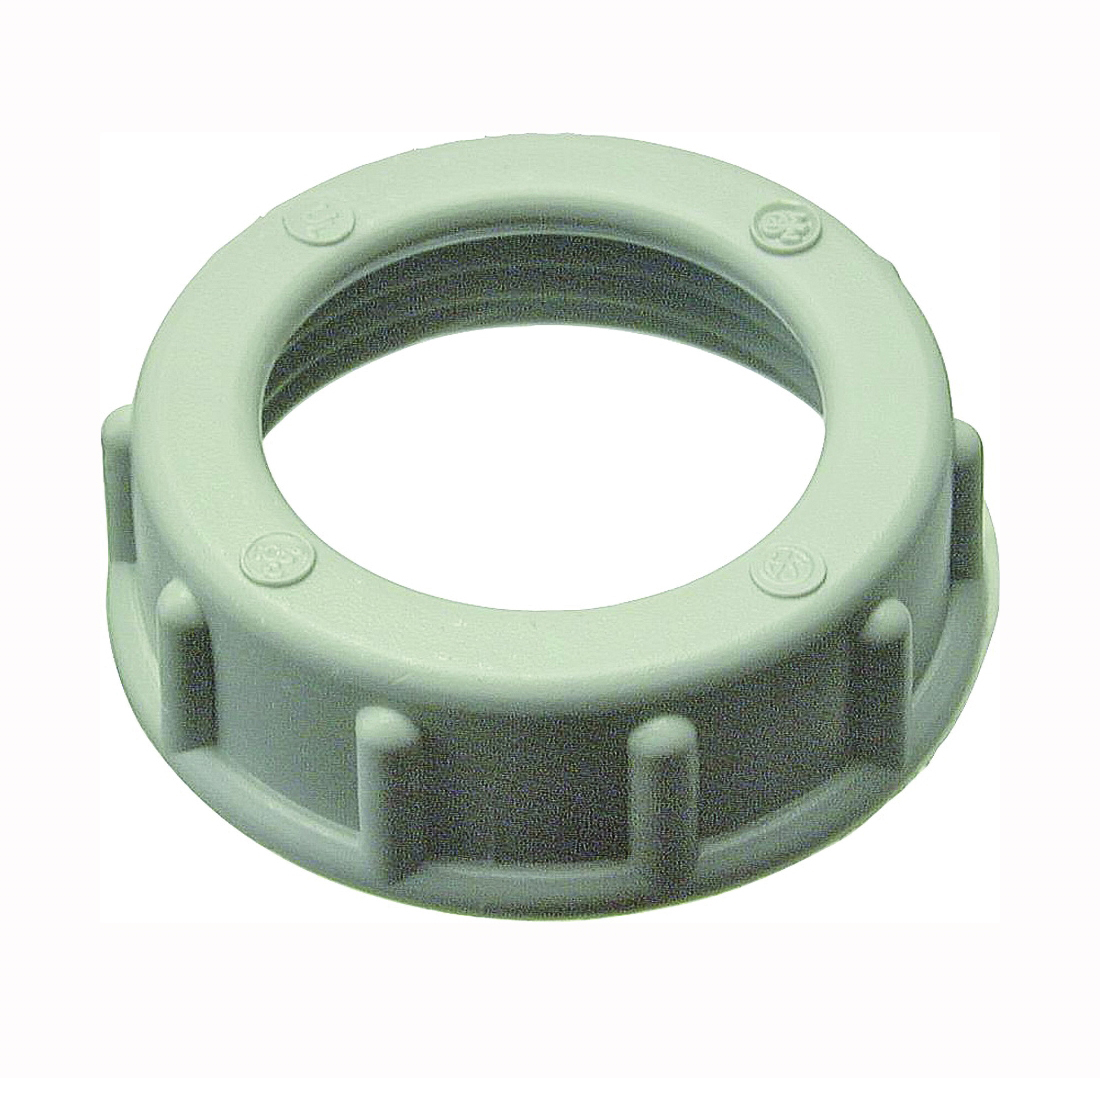 Picture of Halex 97524 Conduit Bushing, 1-1/4 in Trade, Thermoplastic